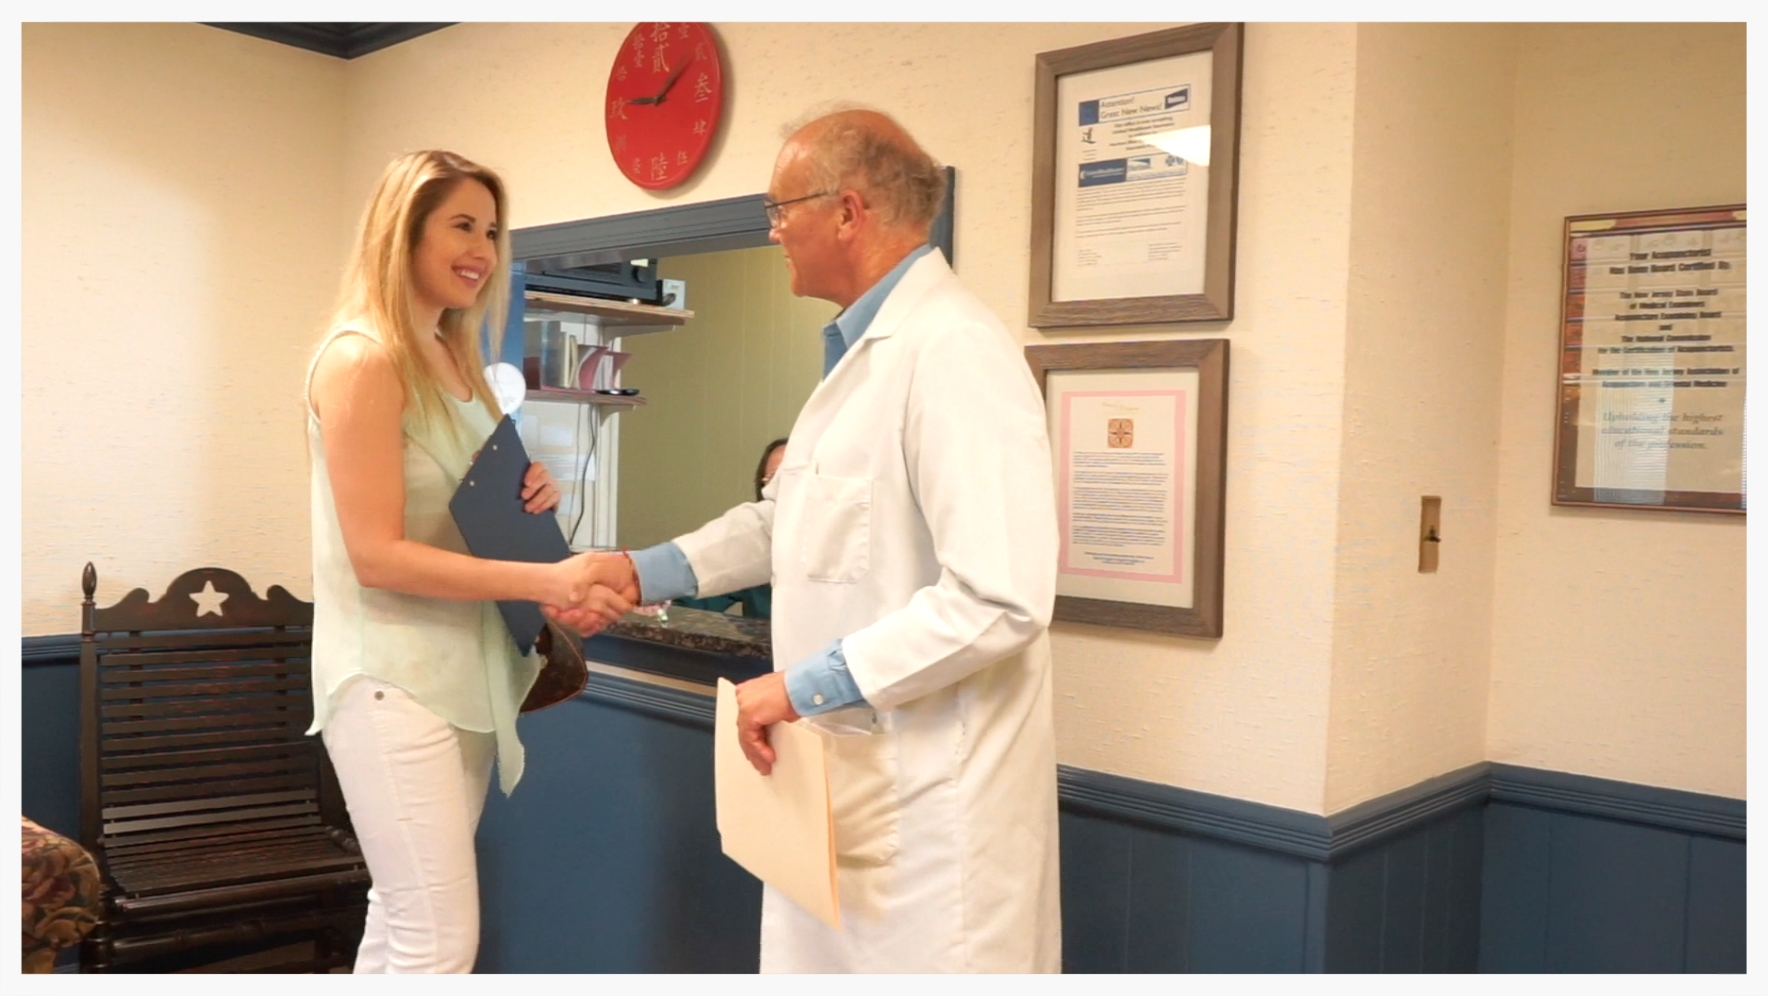 Our practitioners   meet new patients in the ACNJ waiting room, to welcome you in!